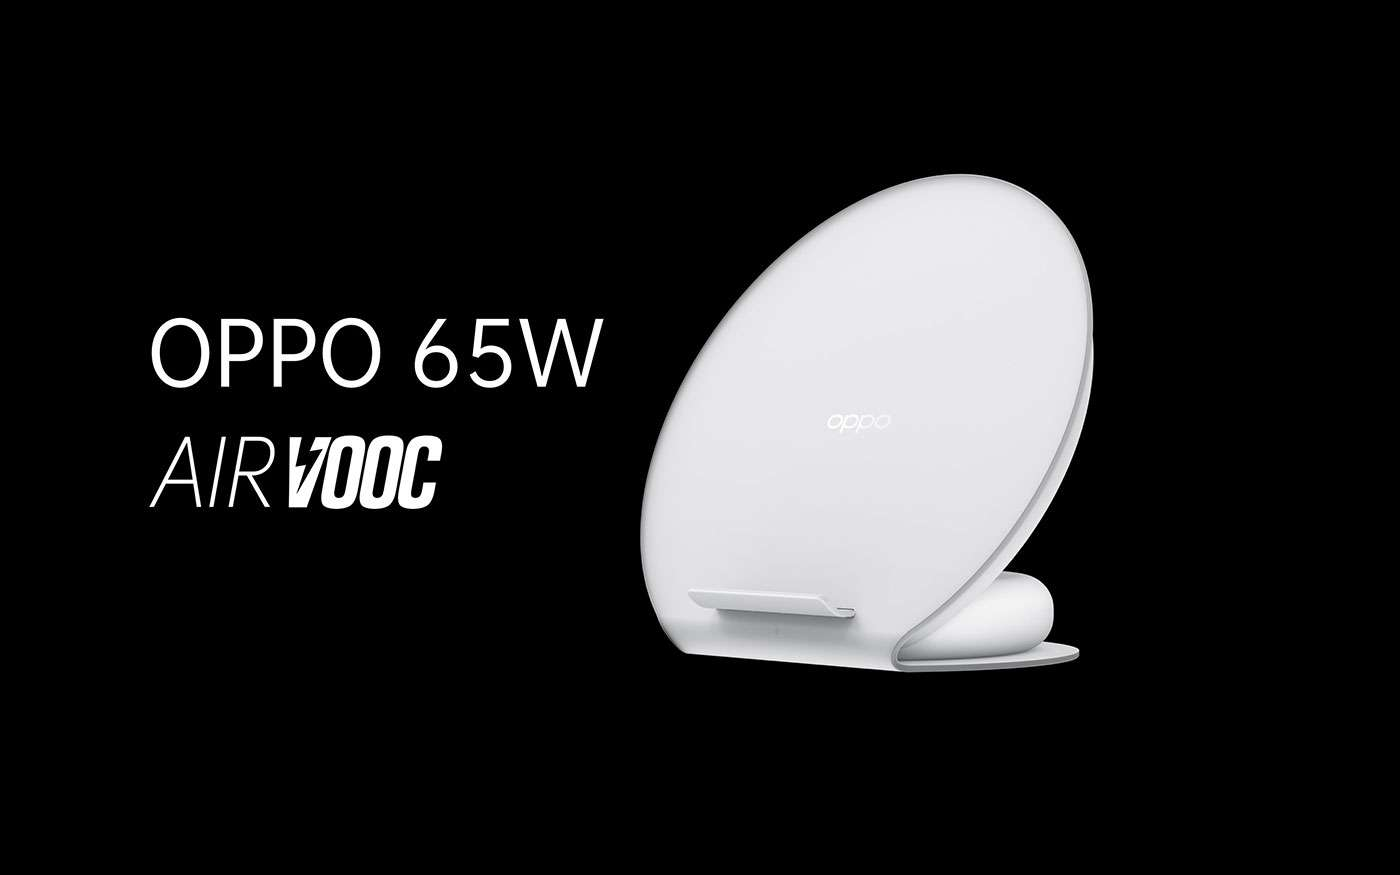 OPPO 65W AirVOOC wireless charger